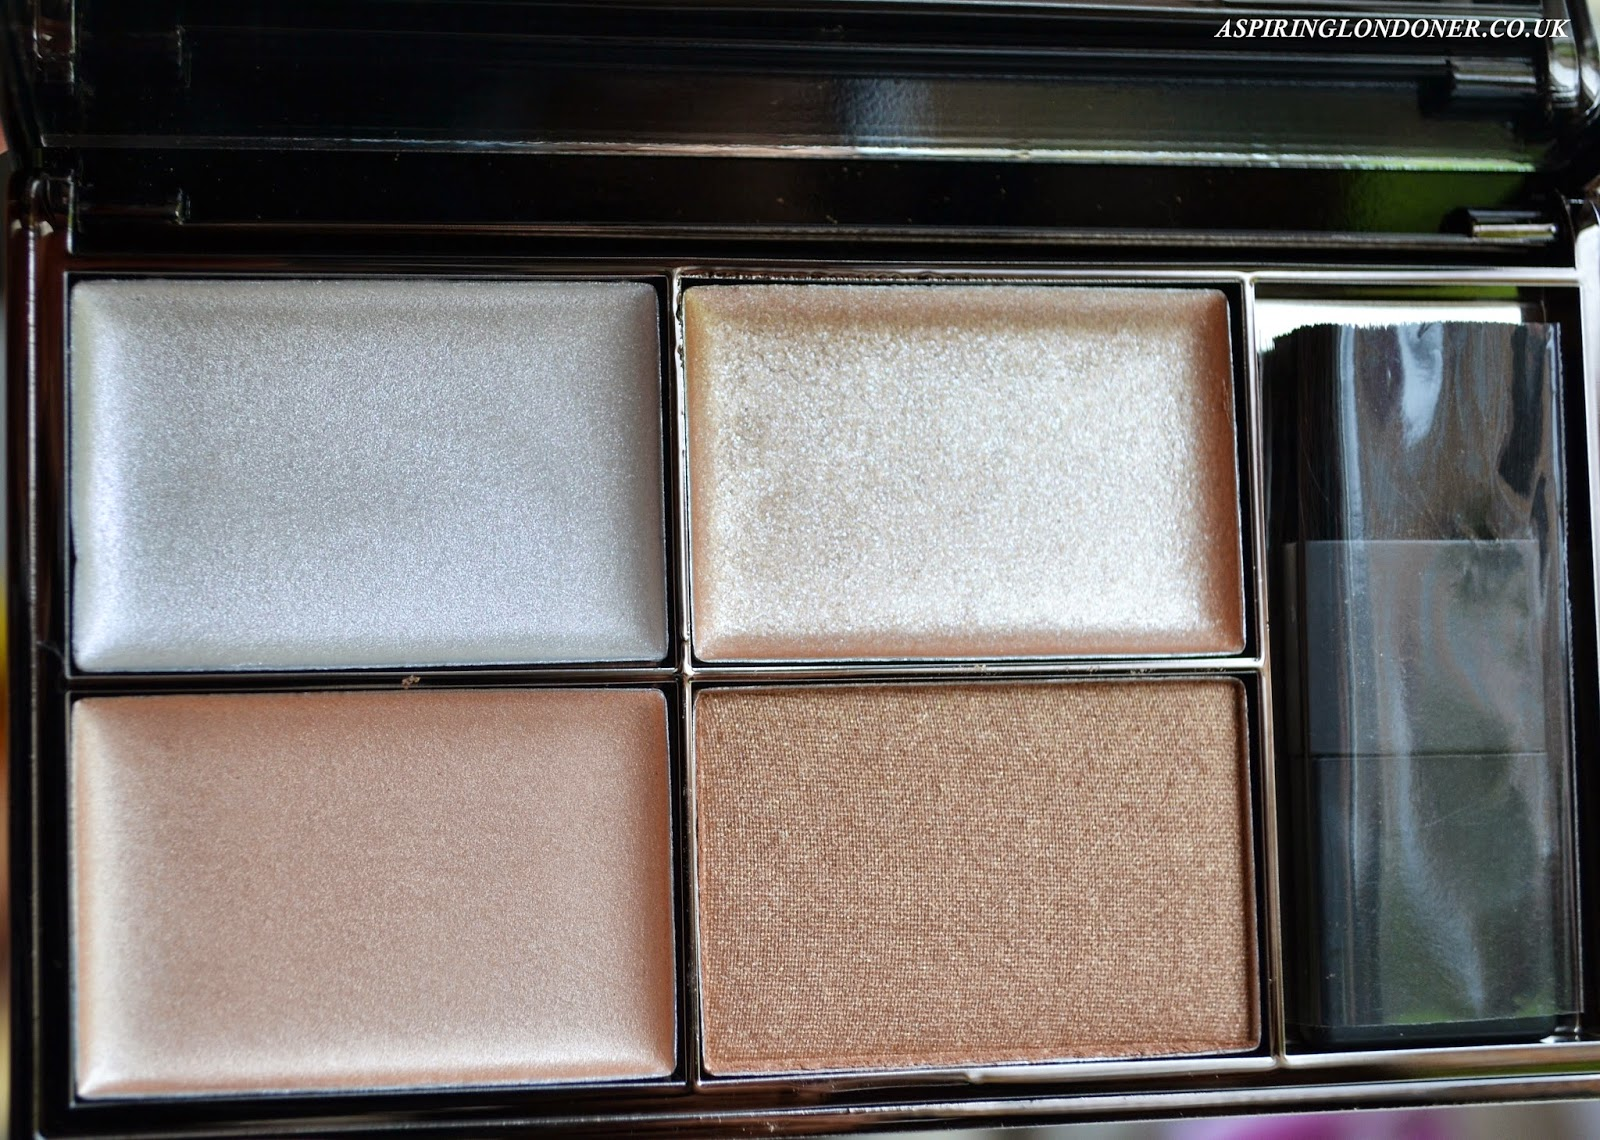 Sleek MakeUp Precious Metals Highlighting Palette Review - Aspiring Londoner